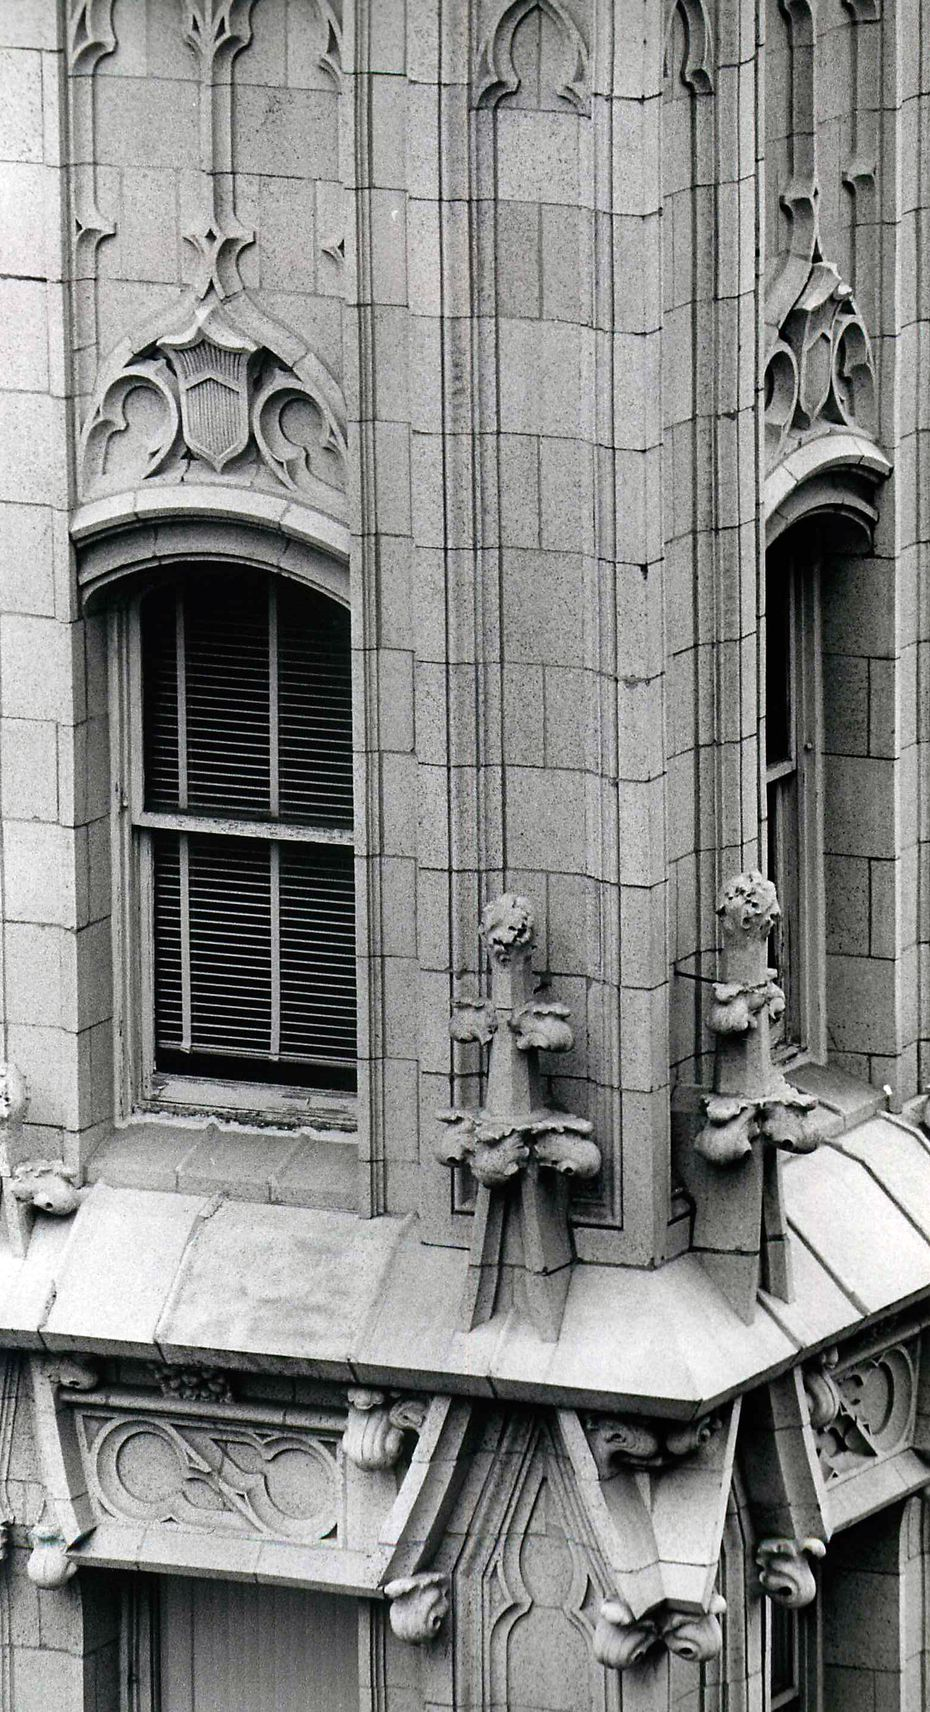 The ornate corner of the 17-story Kirby Building at Main and Akard was first seen by passers-by in 1913, part of the facility built by Adolph Busch as the office building companion of the Hotel Adolphus.  For years, the A. Harris department store occupied the basement and first five floors. Photograph from Jan. 30, 1975.